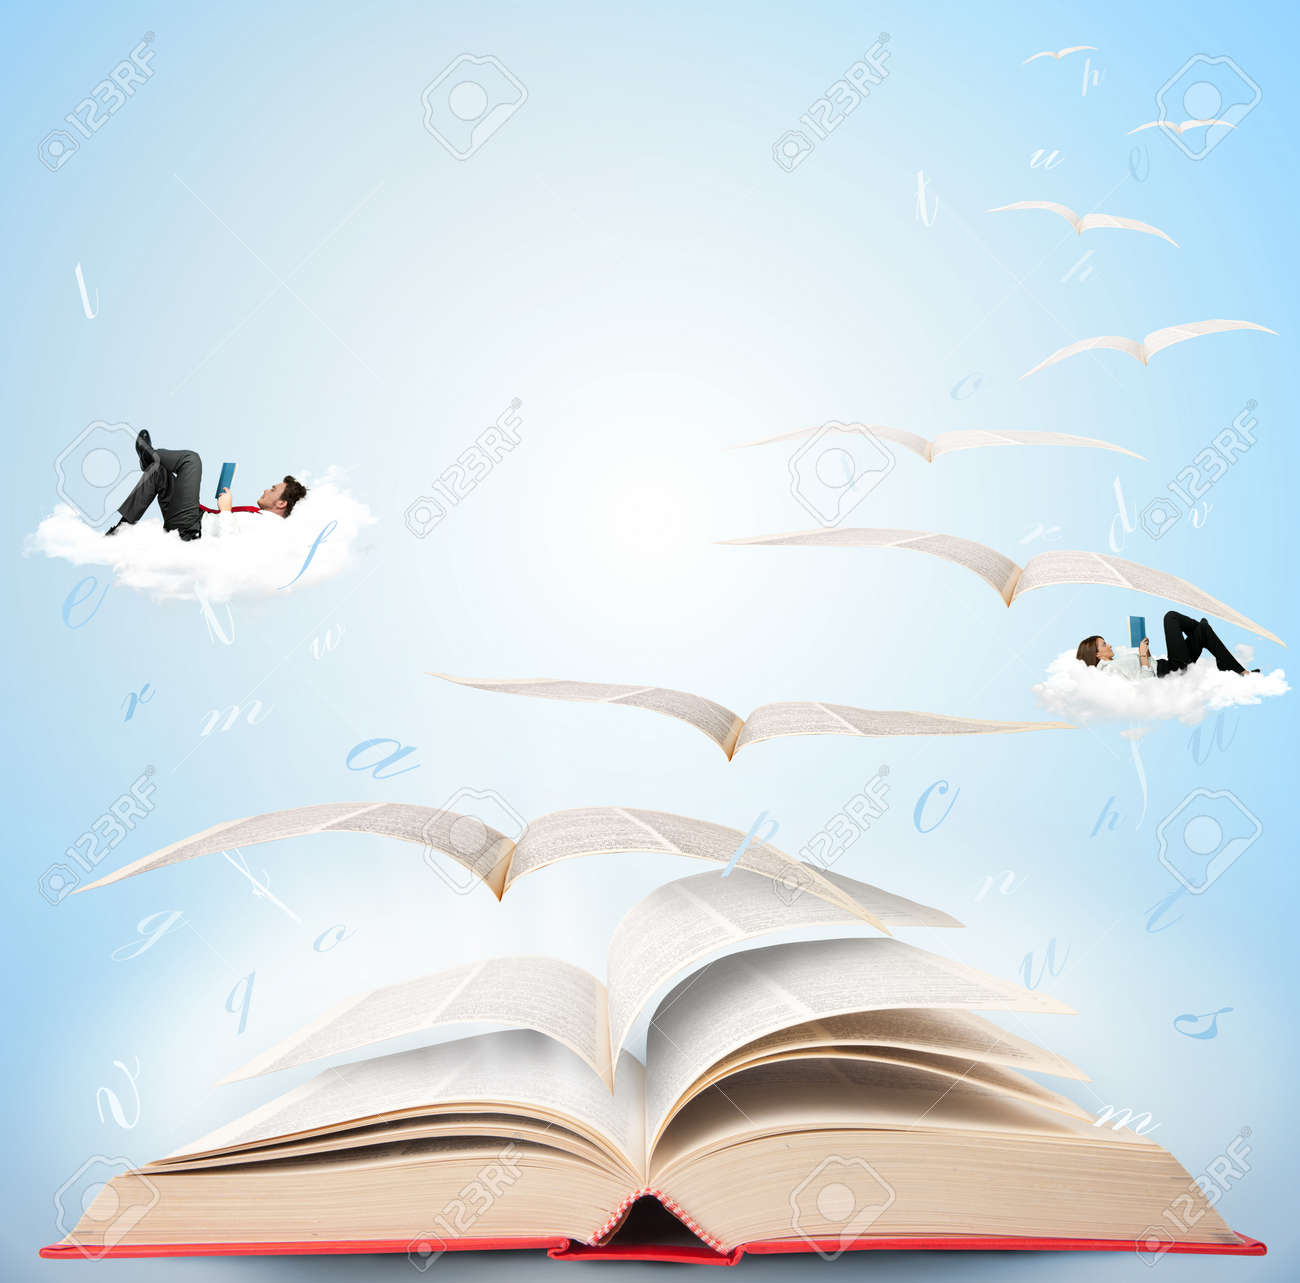 Fly with fantasy reading a book Stock Photo - 13947250